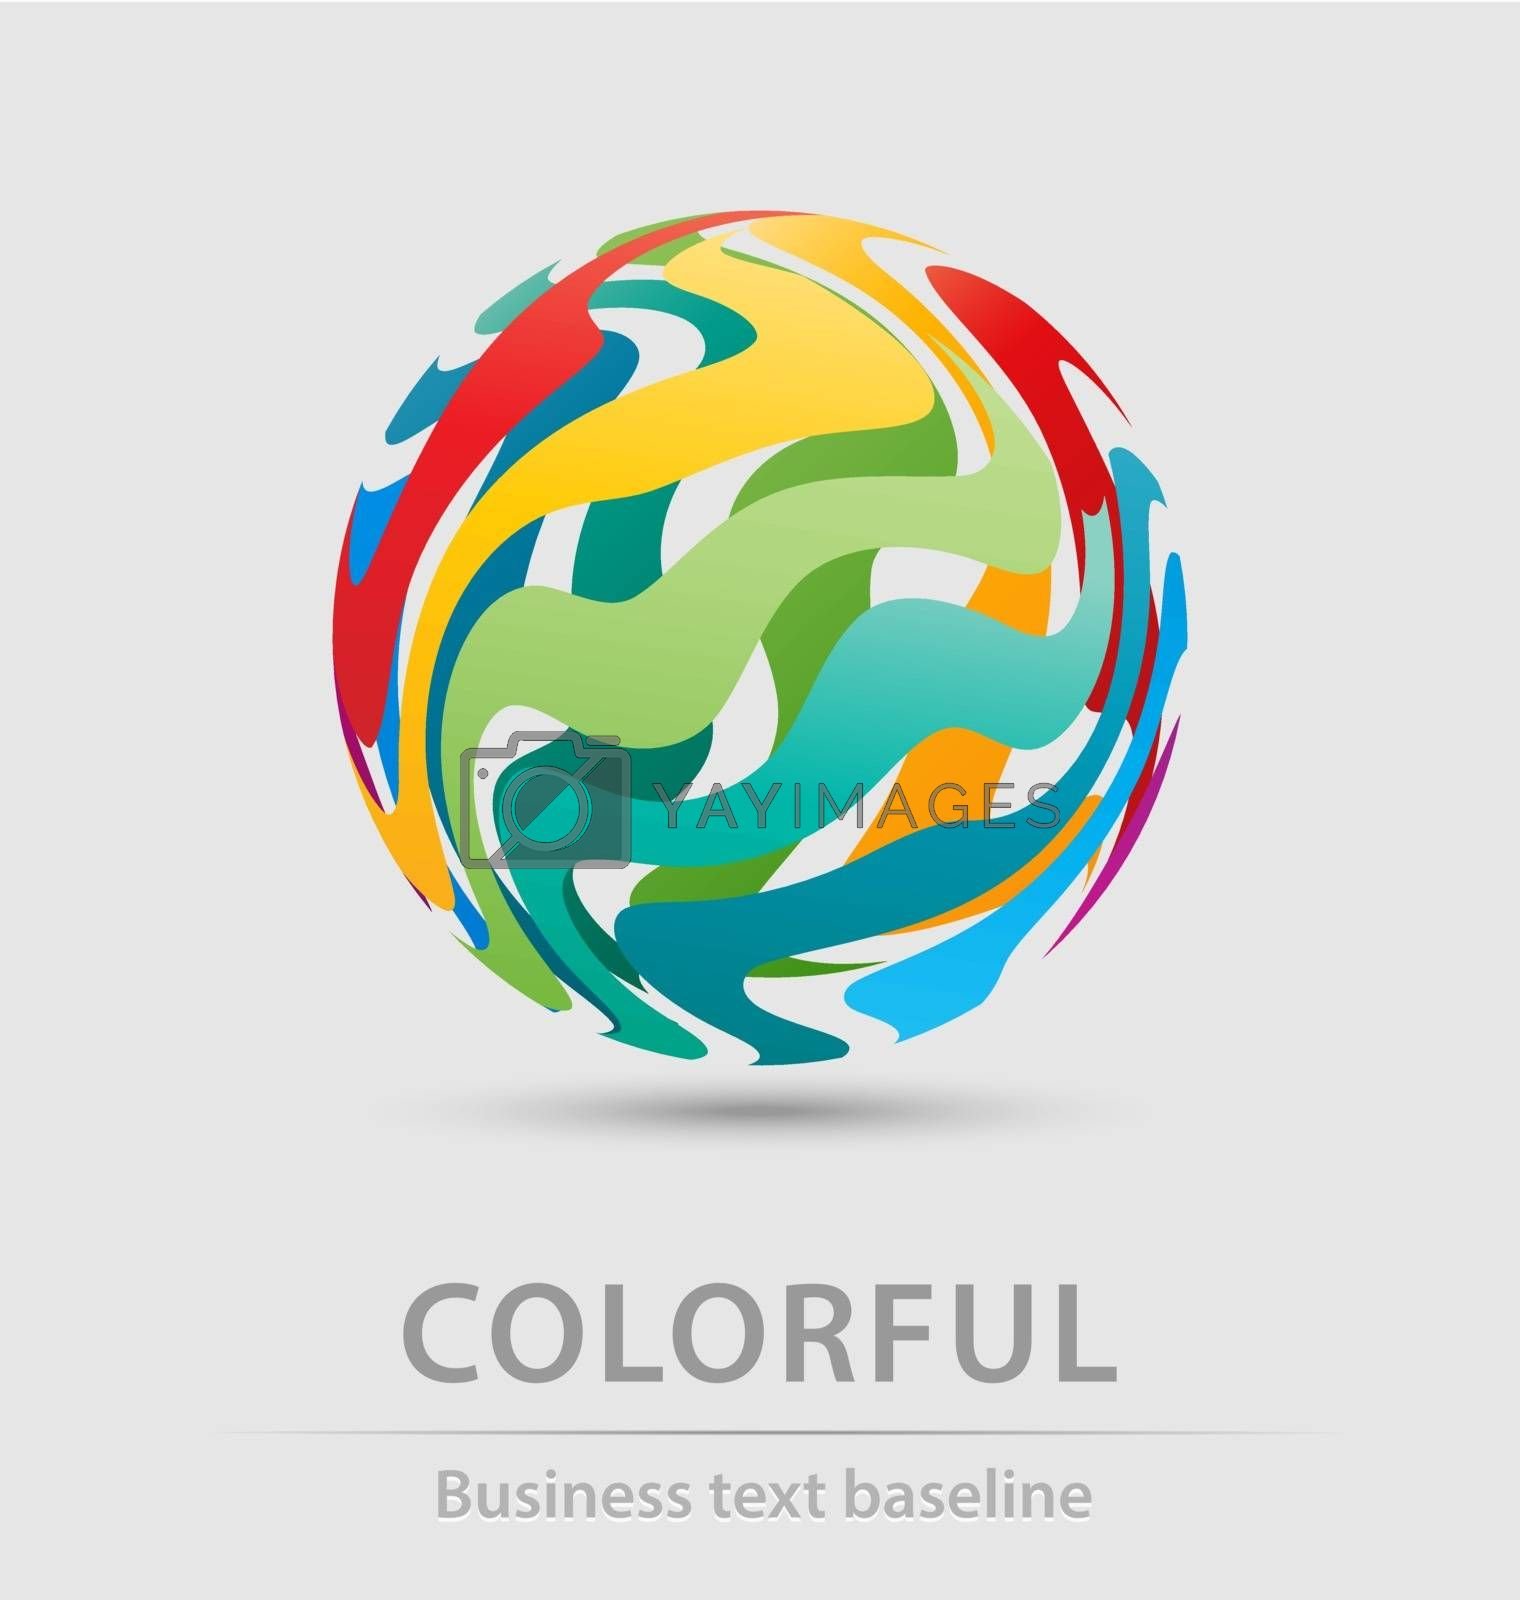 Colorful ball business icon for creative design